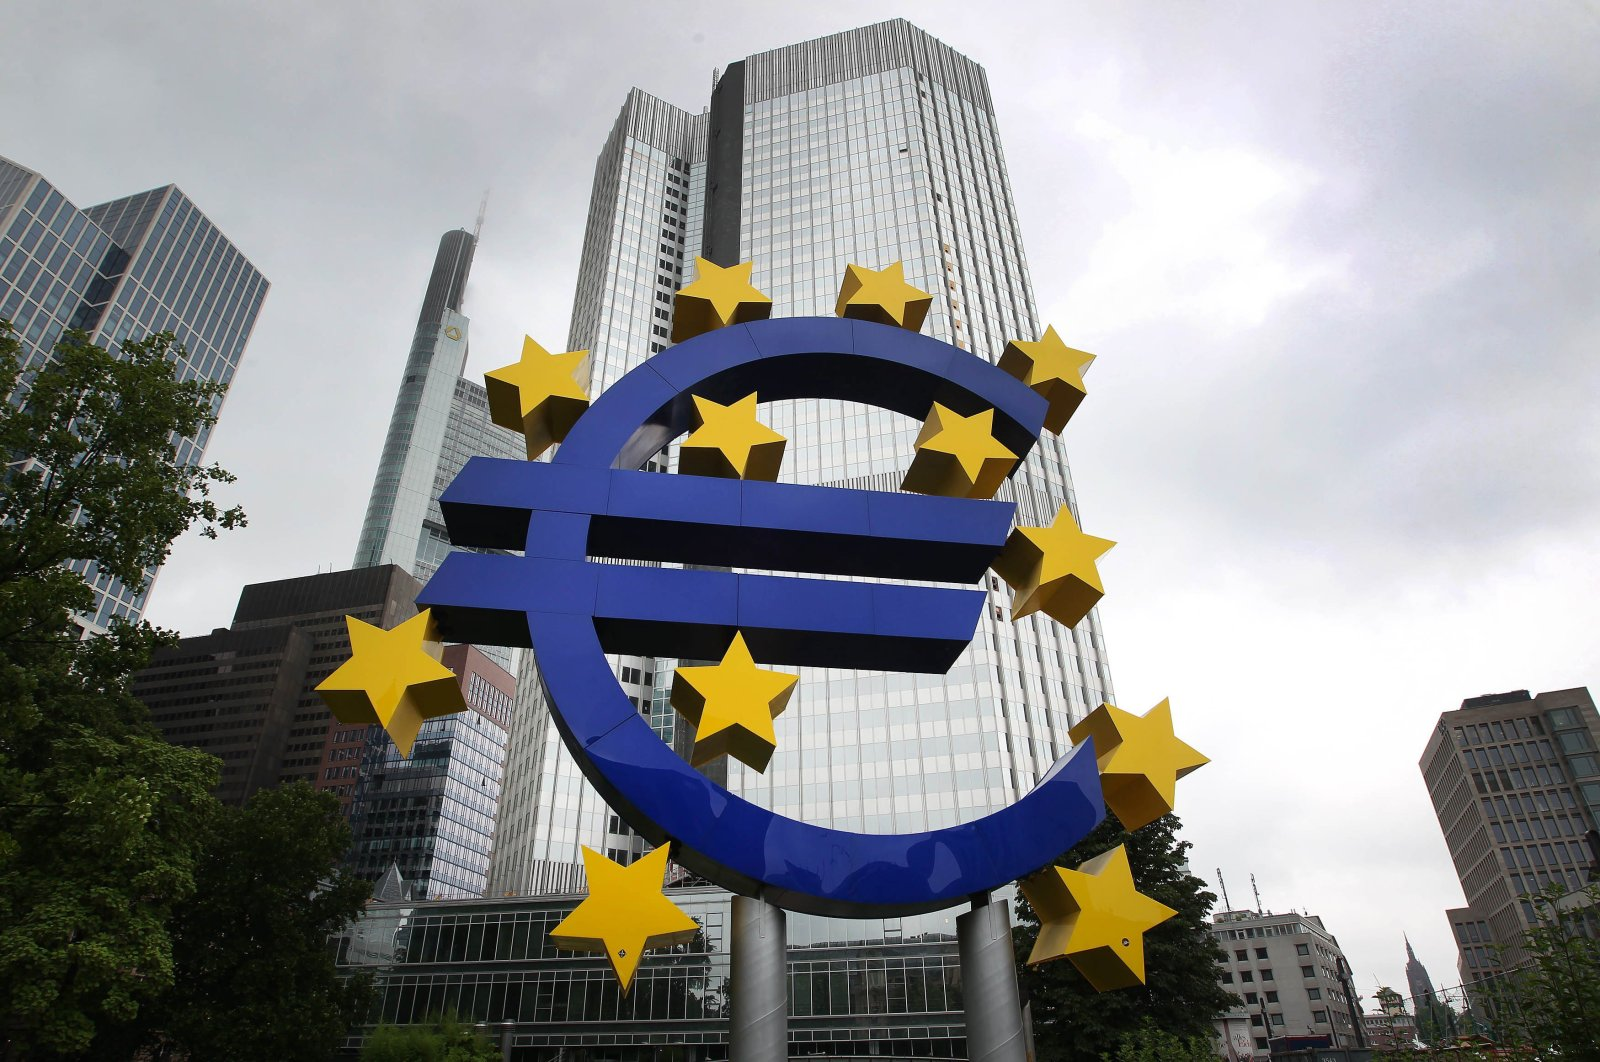 The logo of the Euro currency in front of the former headquarters of the European Central Bank (ECB) in Frankfurt am Main, western Germany, July 20, 2015. (AFP Photo)